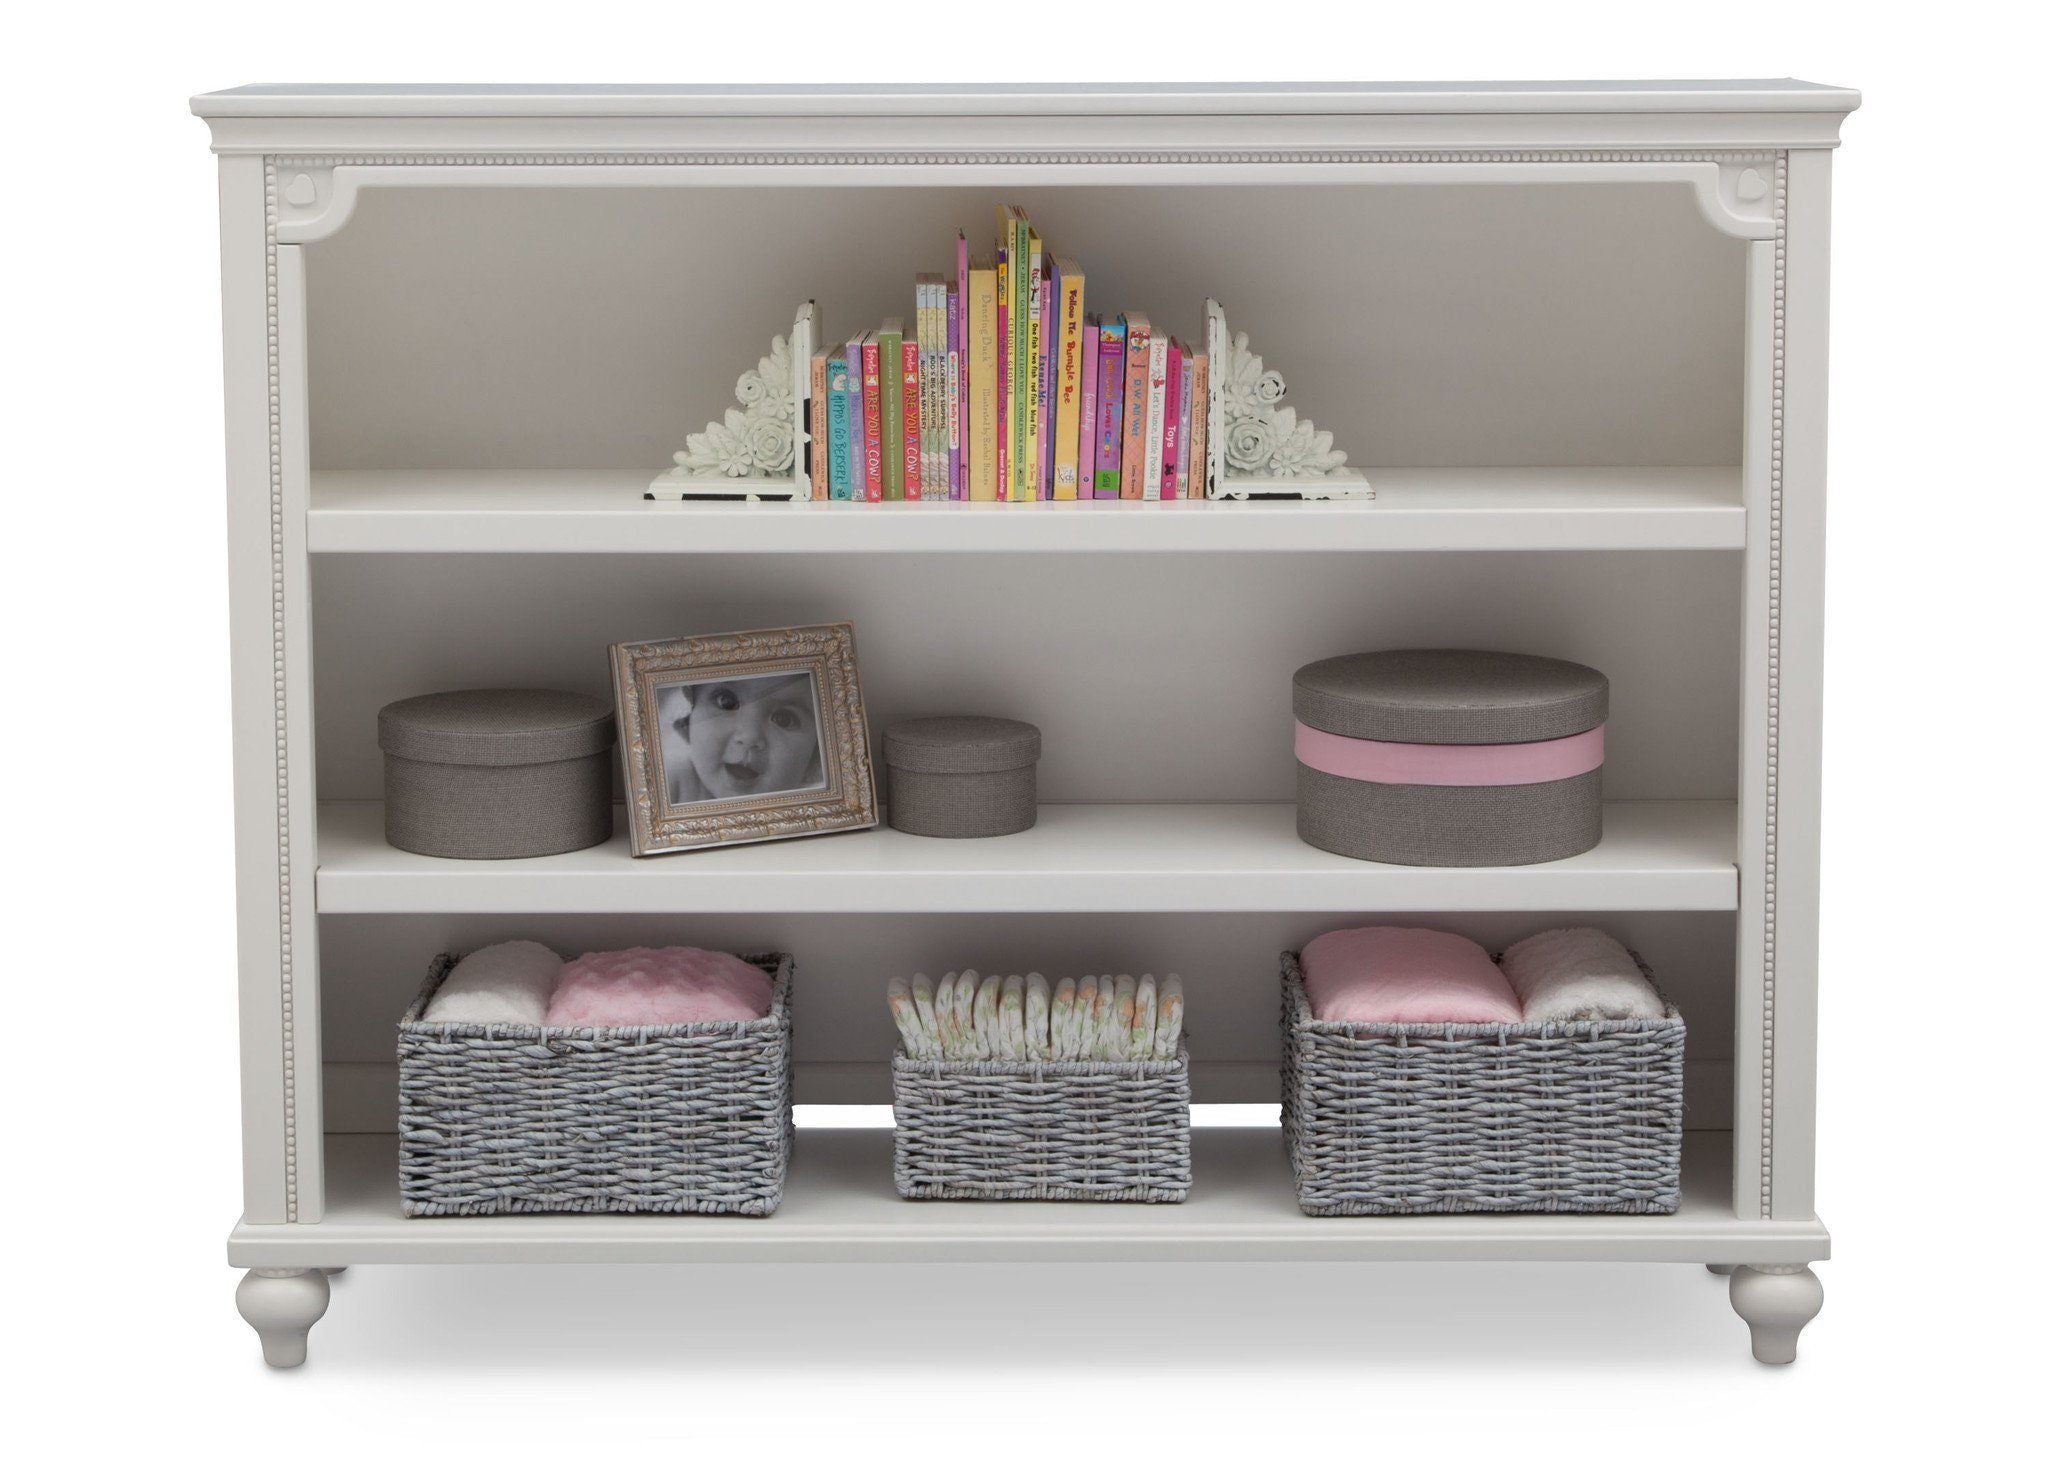 Delta Children White Ambiance (108) Disney Princess Magical Dreams Bookcase/Hutch Front View with Included Base and Props a7a